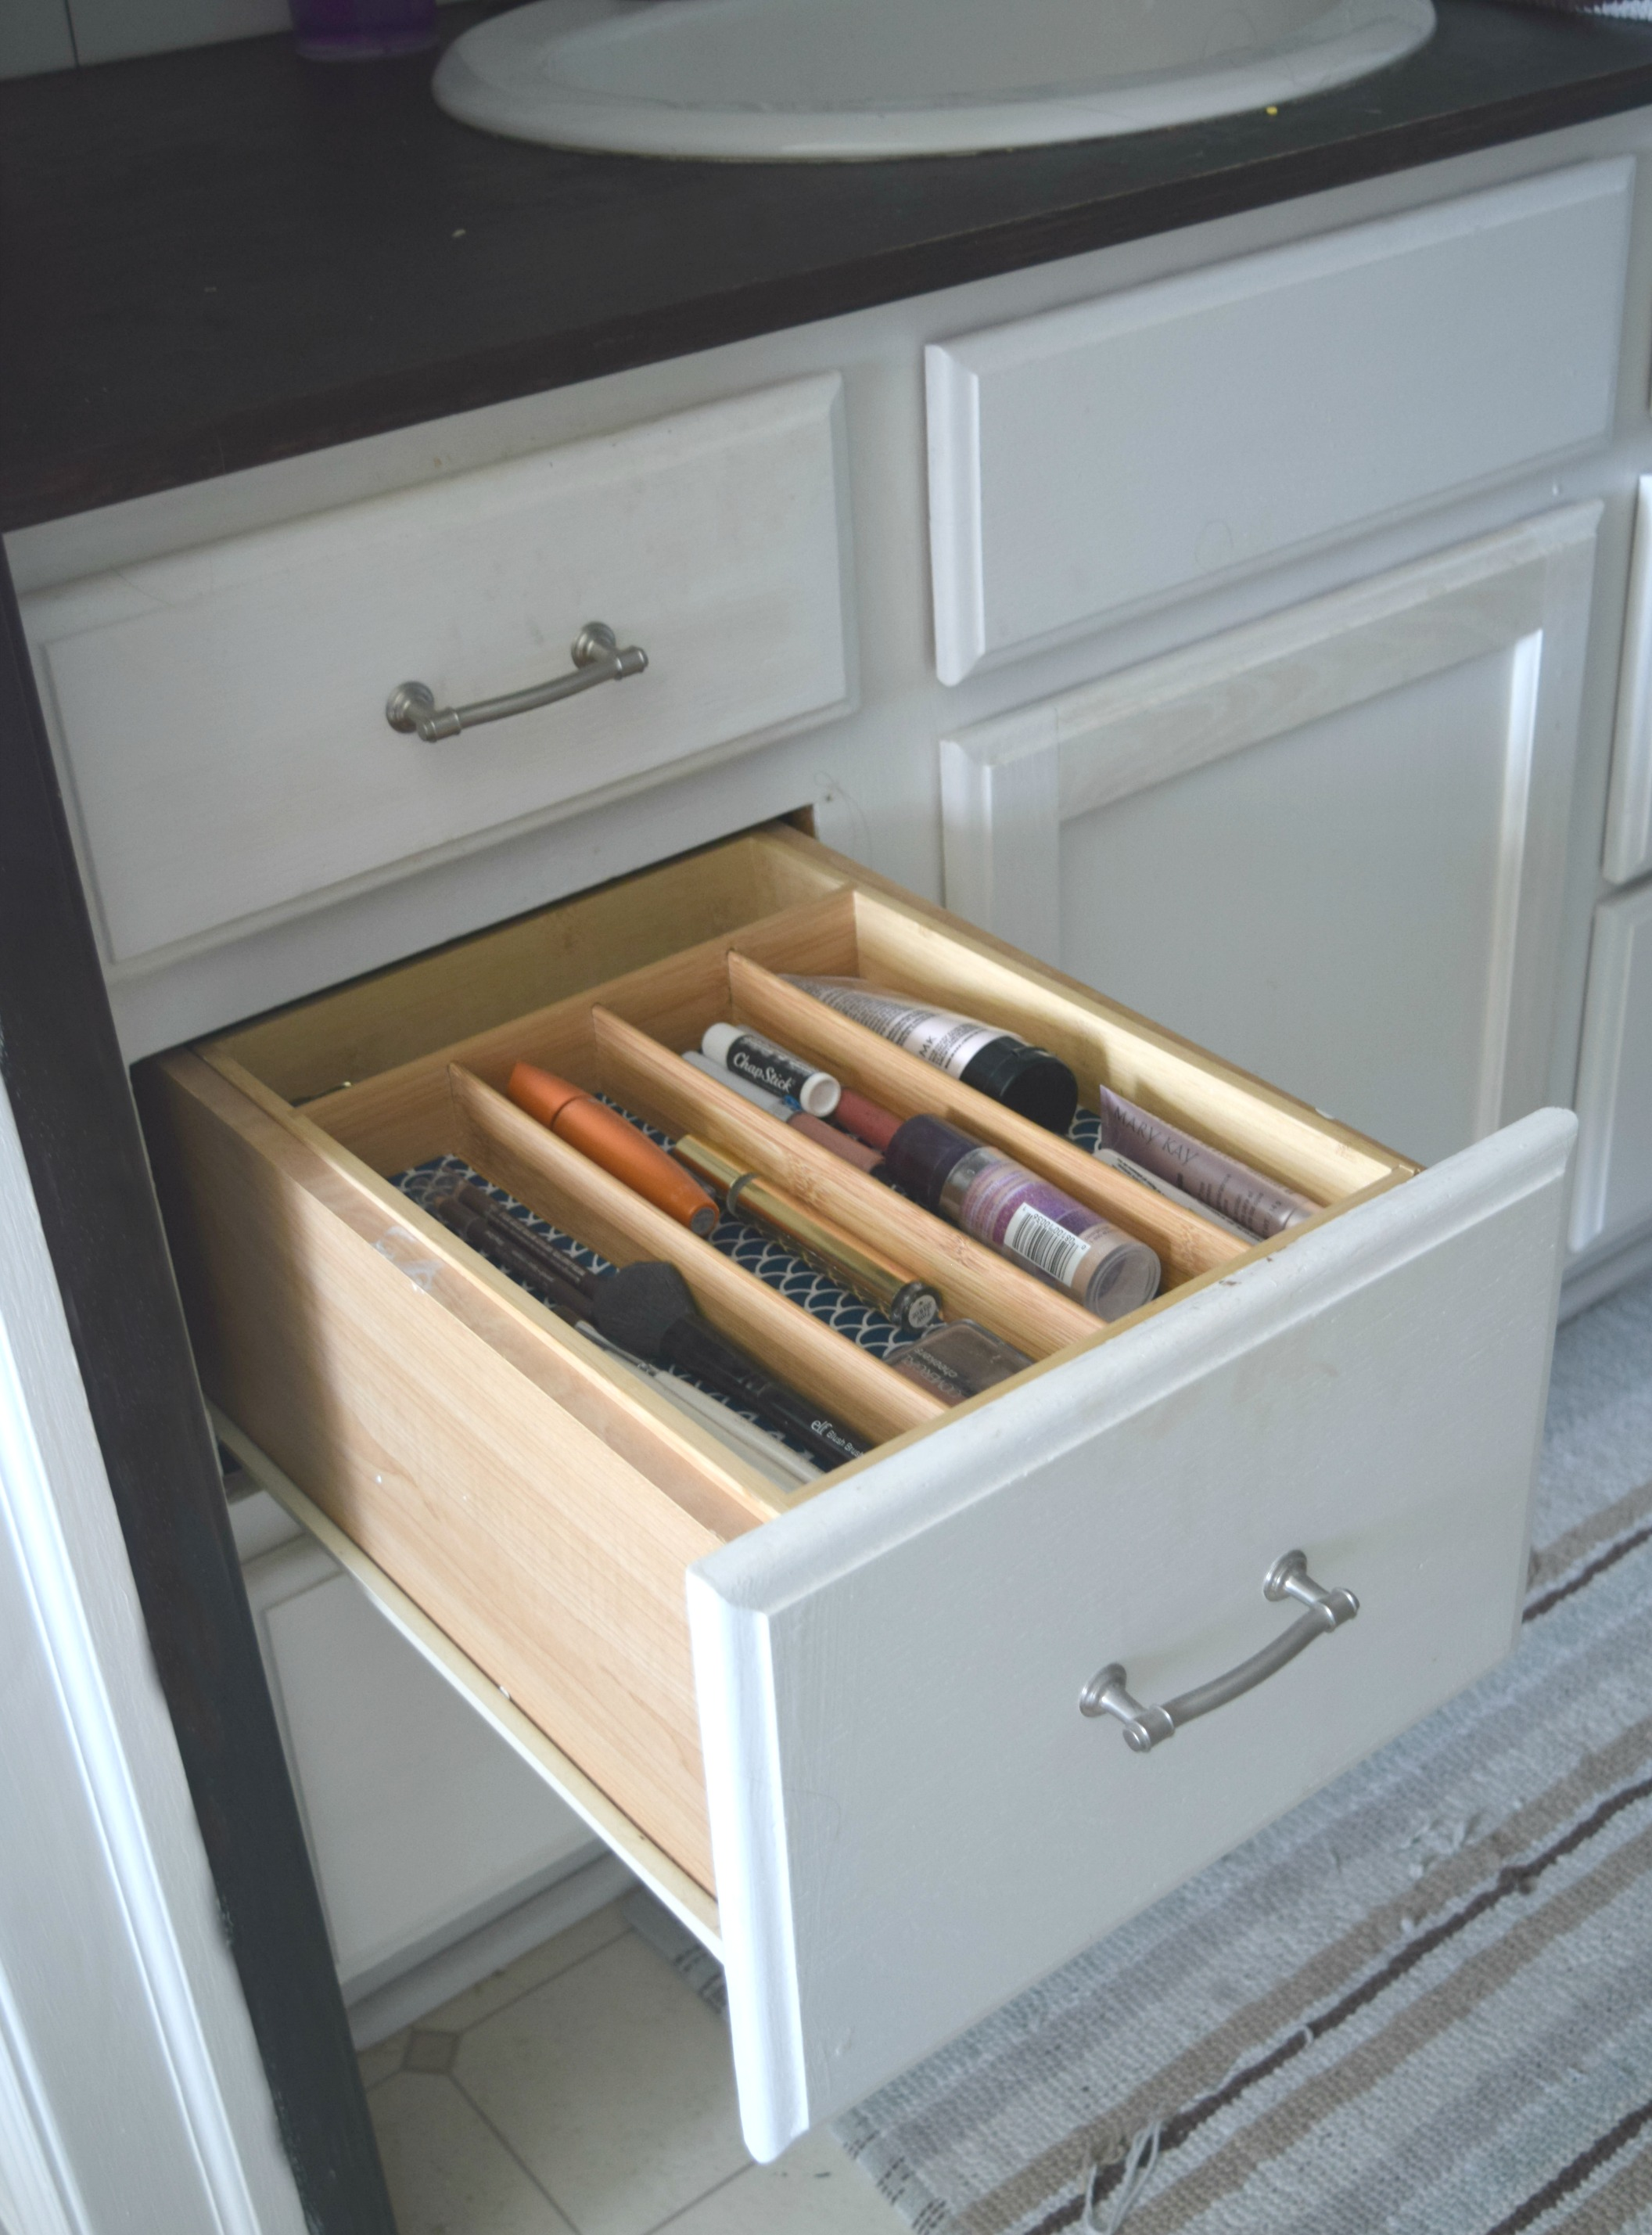 Simple ways to organize bathroom drawers • Our House Now a ...